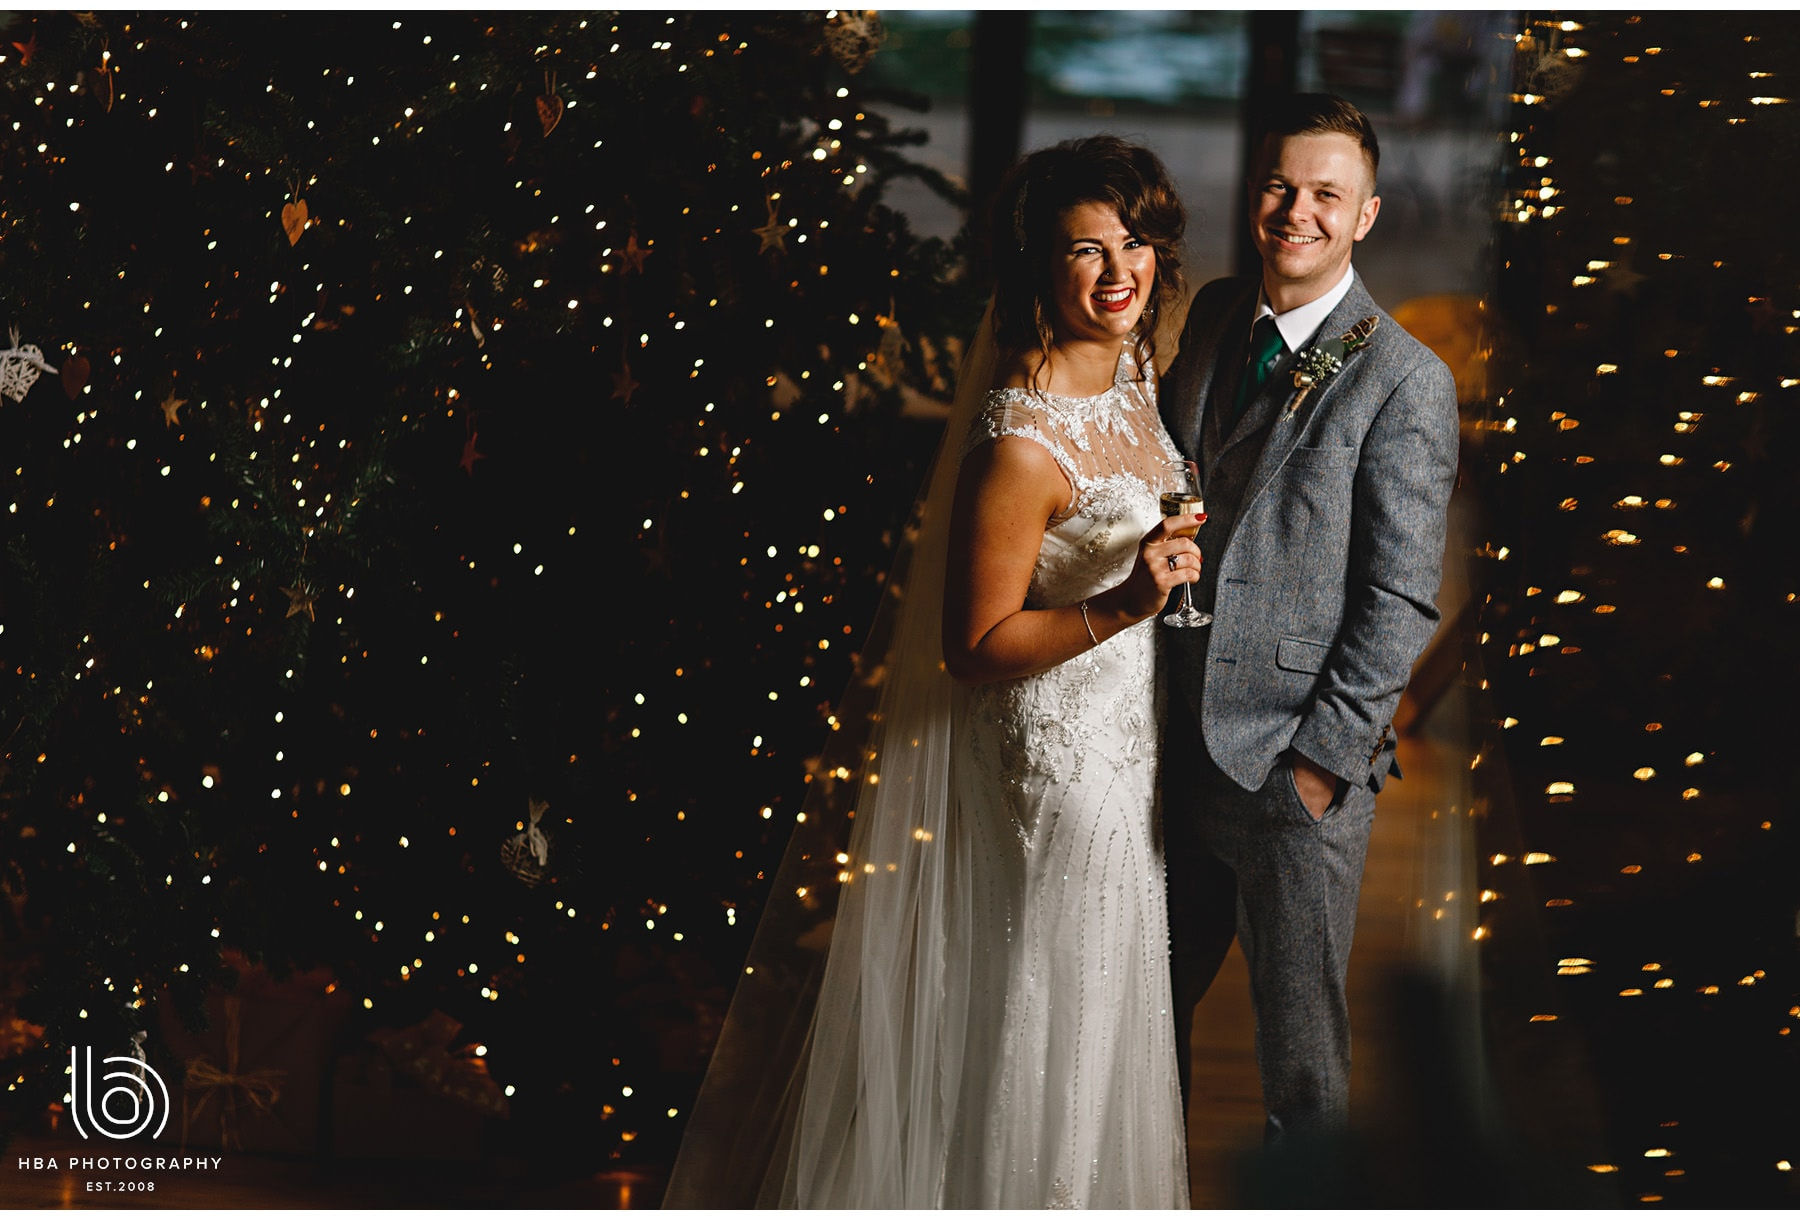 the bride & groom laughing by the christmas tree